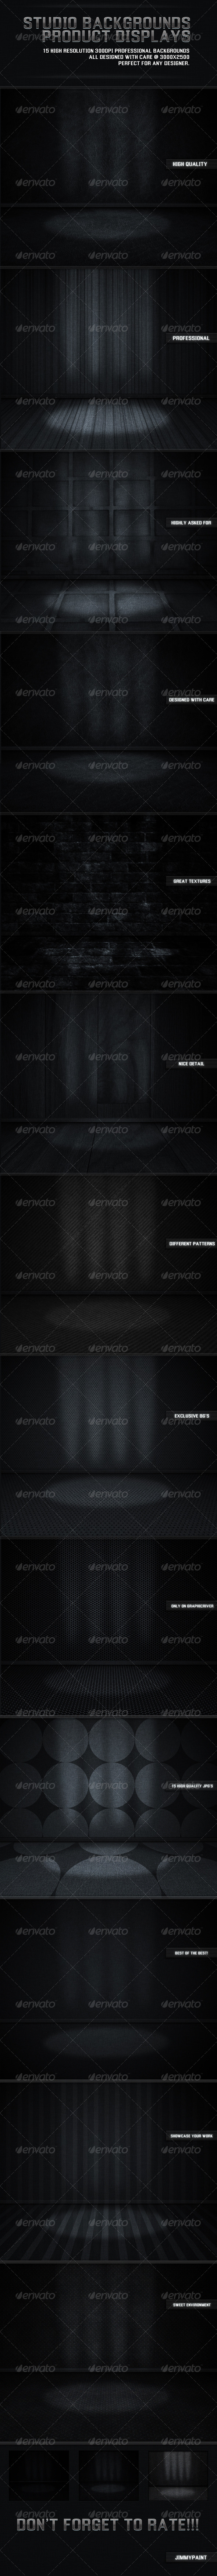 GraphicRiver Studio Backgrounds Product Displays 5028232